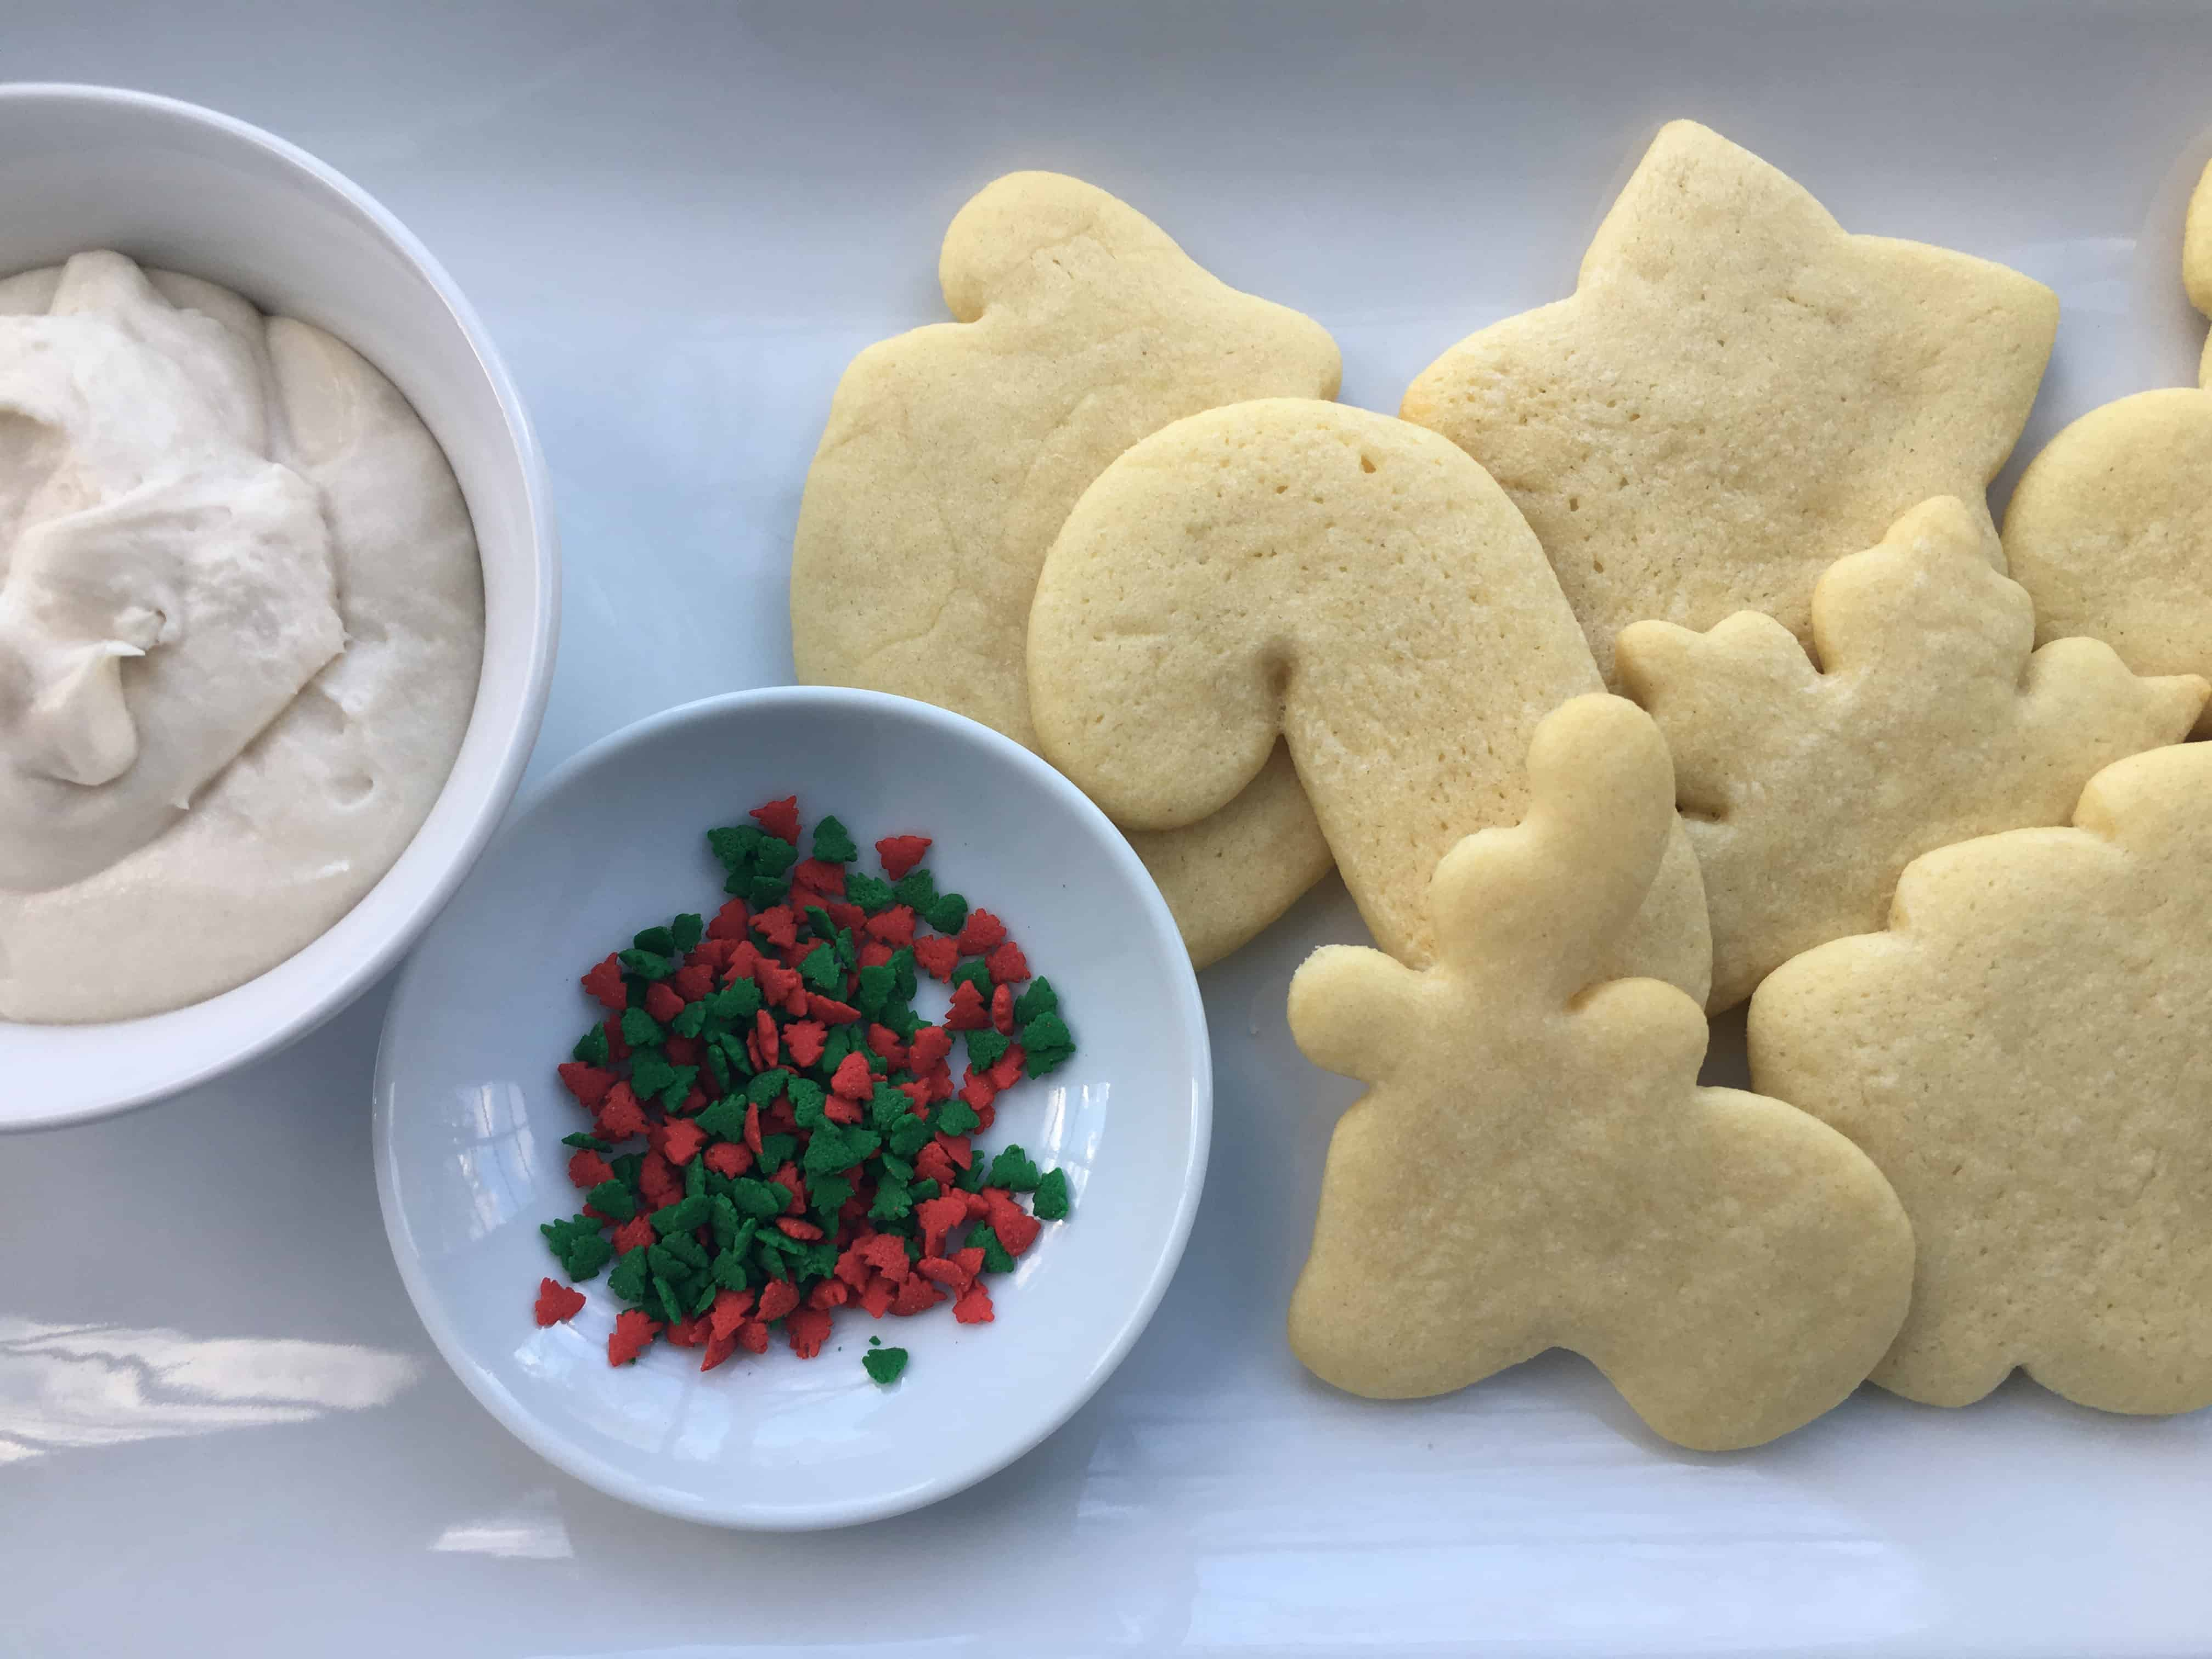 sugar cookies next to a bowl of sprinkles and frosting